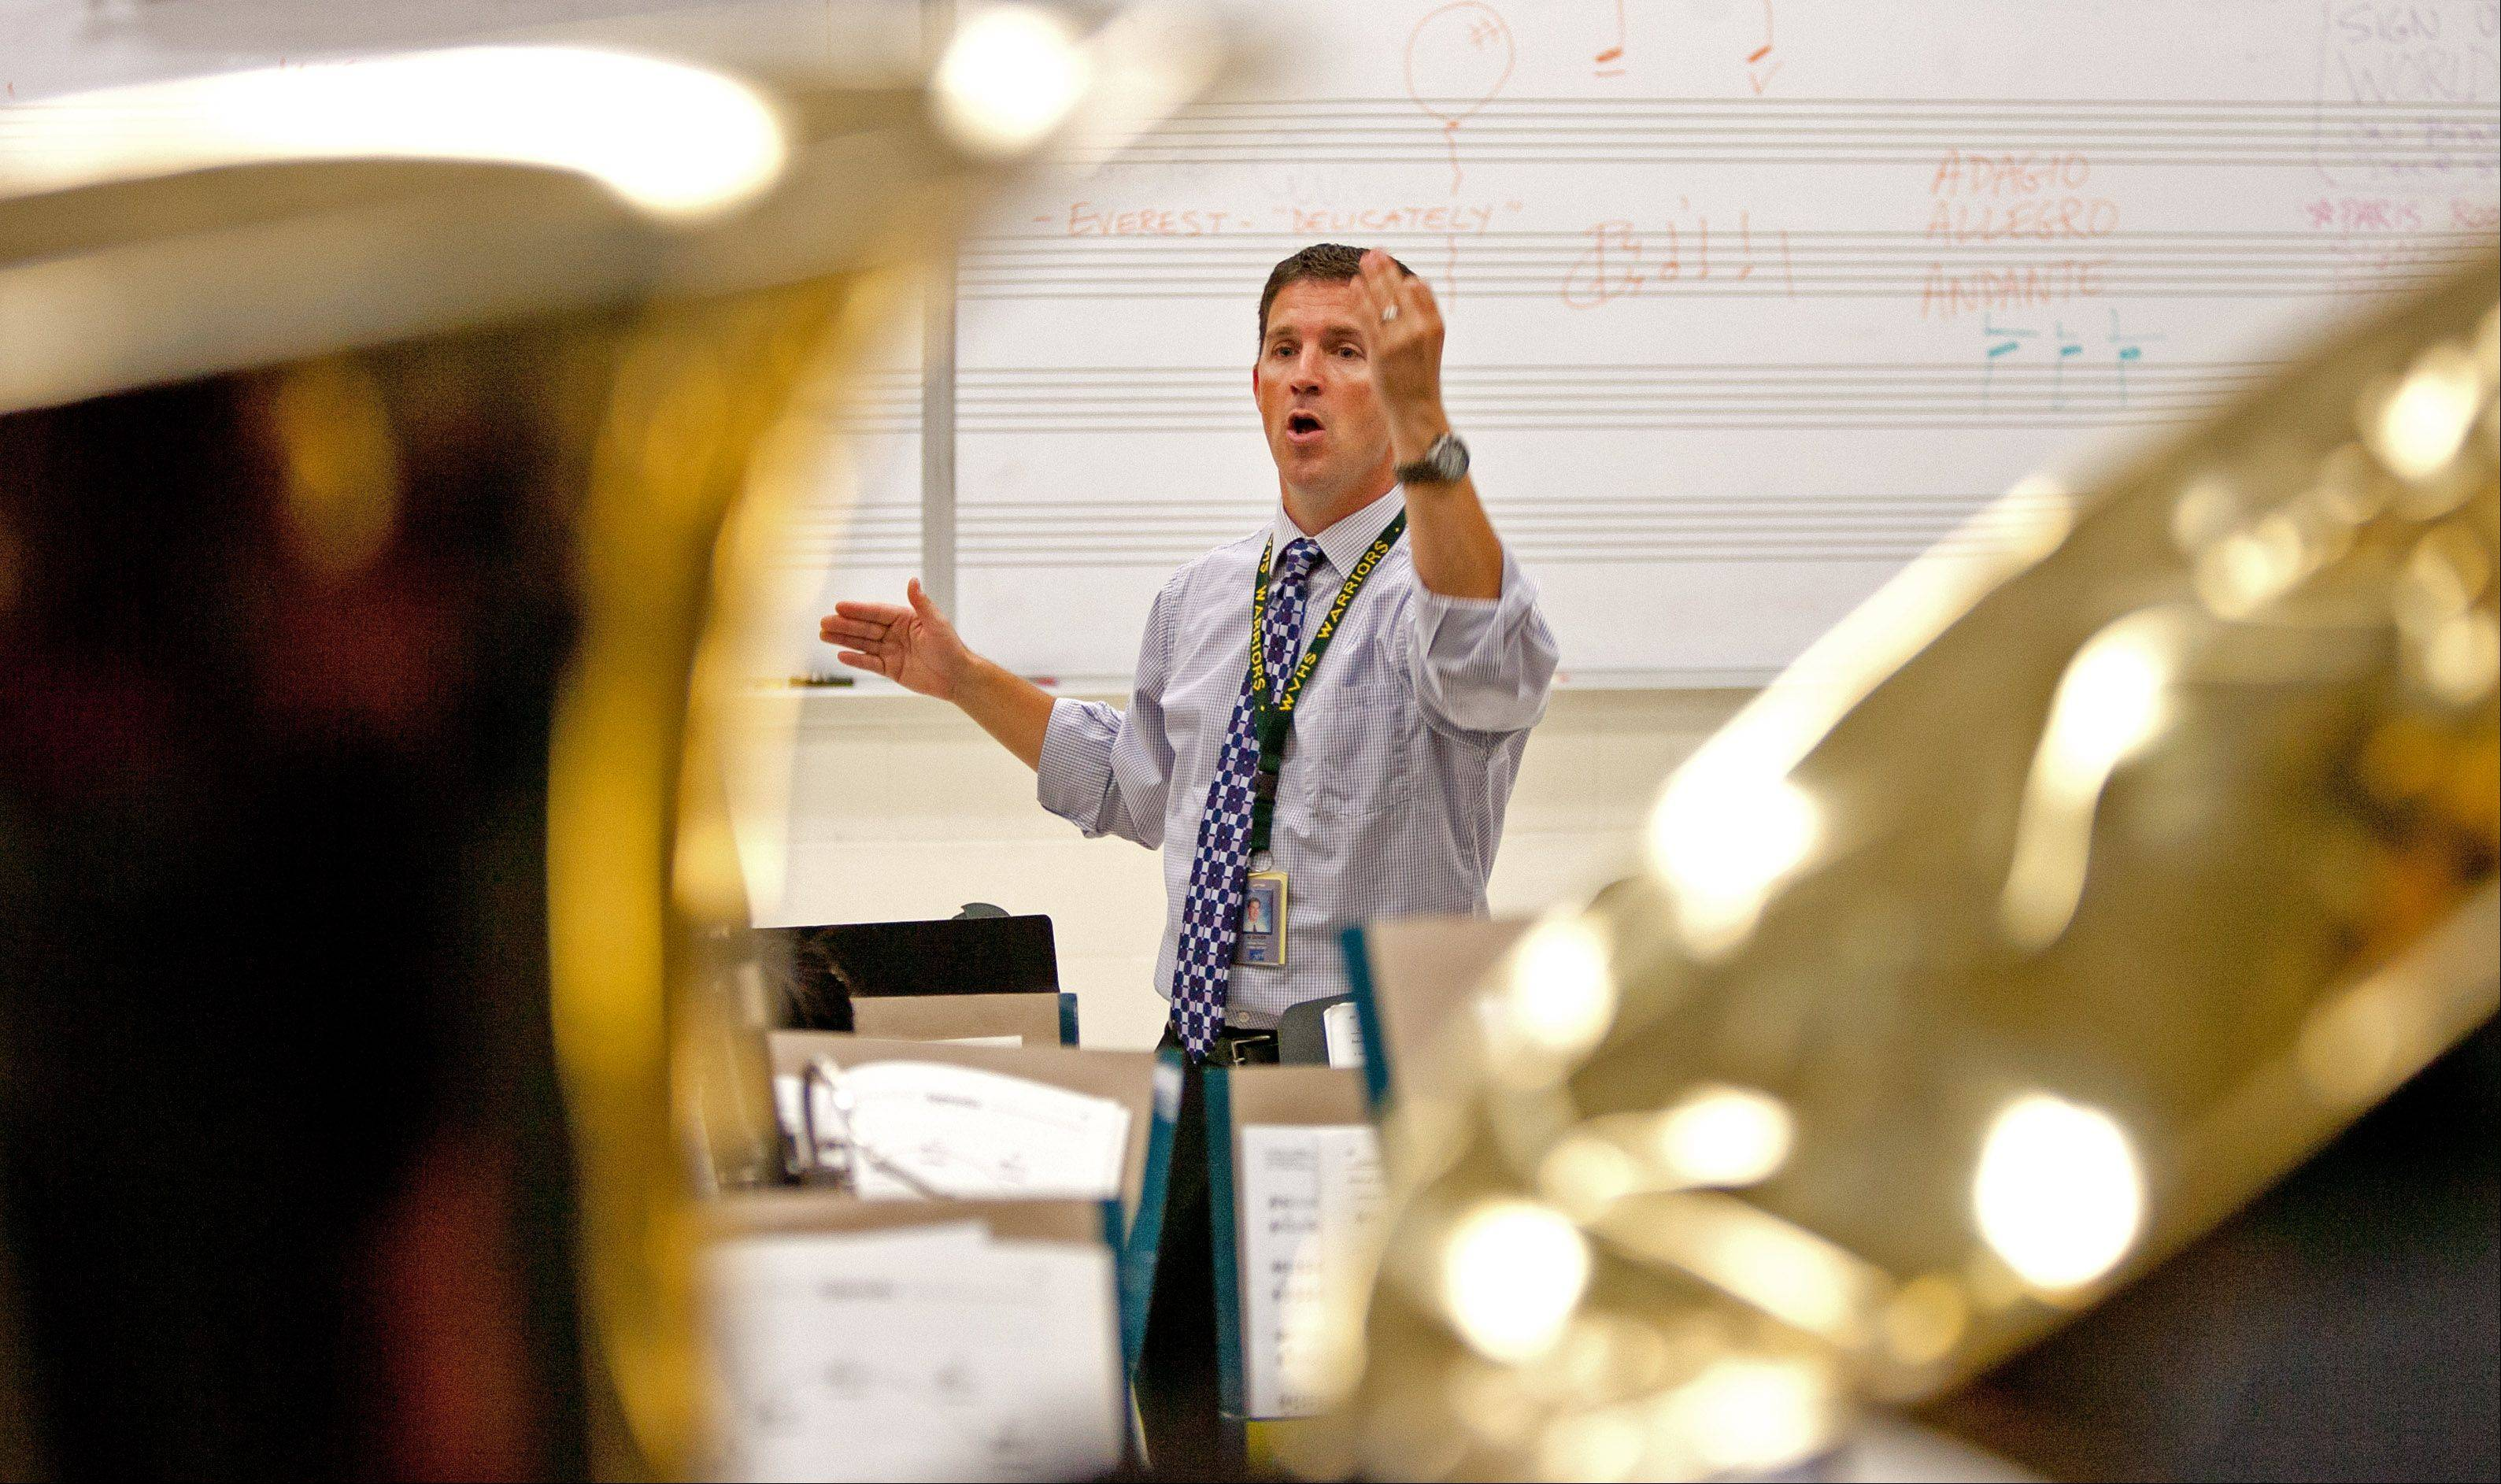 Mark Duker, fine arts department chairman at Waubonsie Valley High School, is one of 25 semifinalists for the first Grammy Award for music educators. He conducts the school's most prestigious band, Wind Ensemble, and helps ensure other music and art teachers have what they need to best instruct their students.